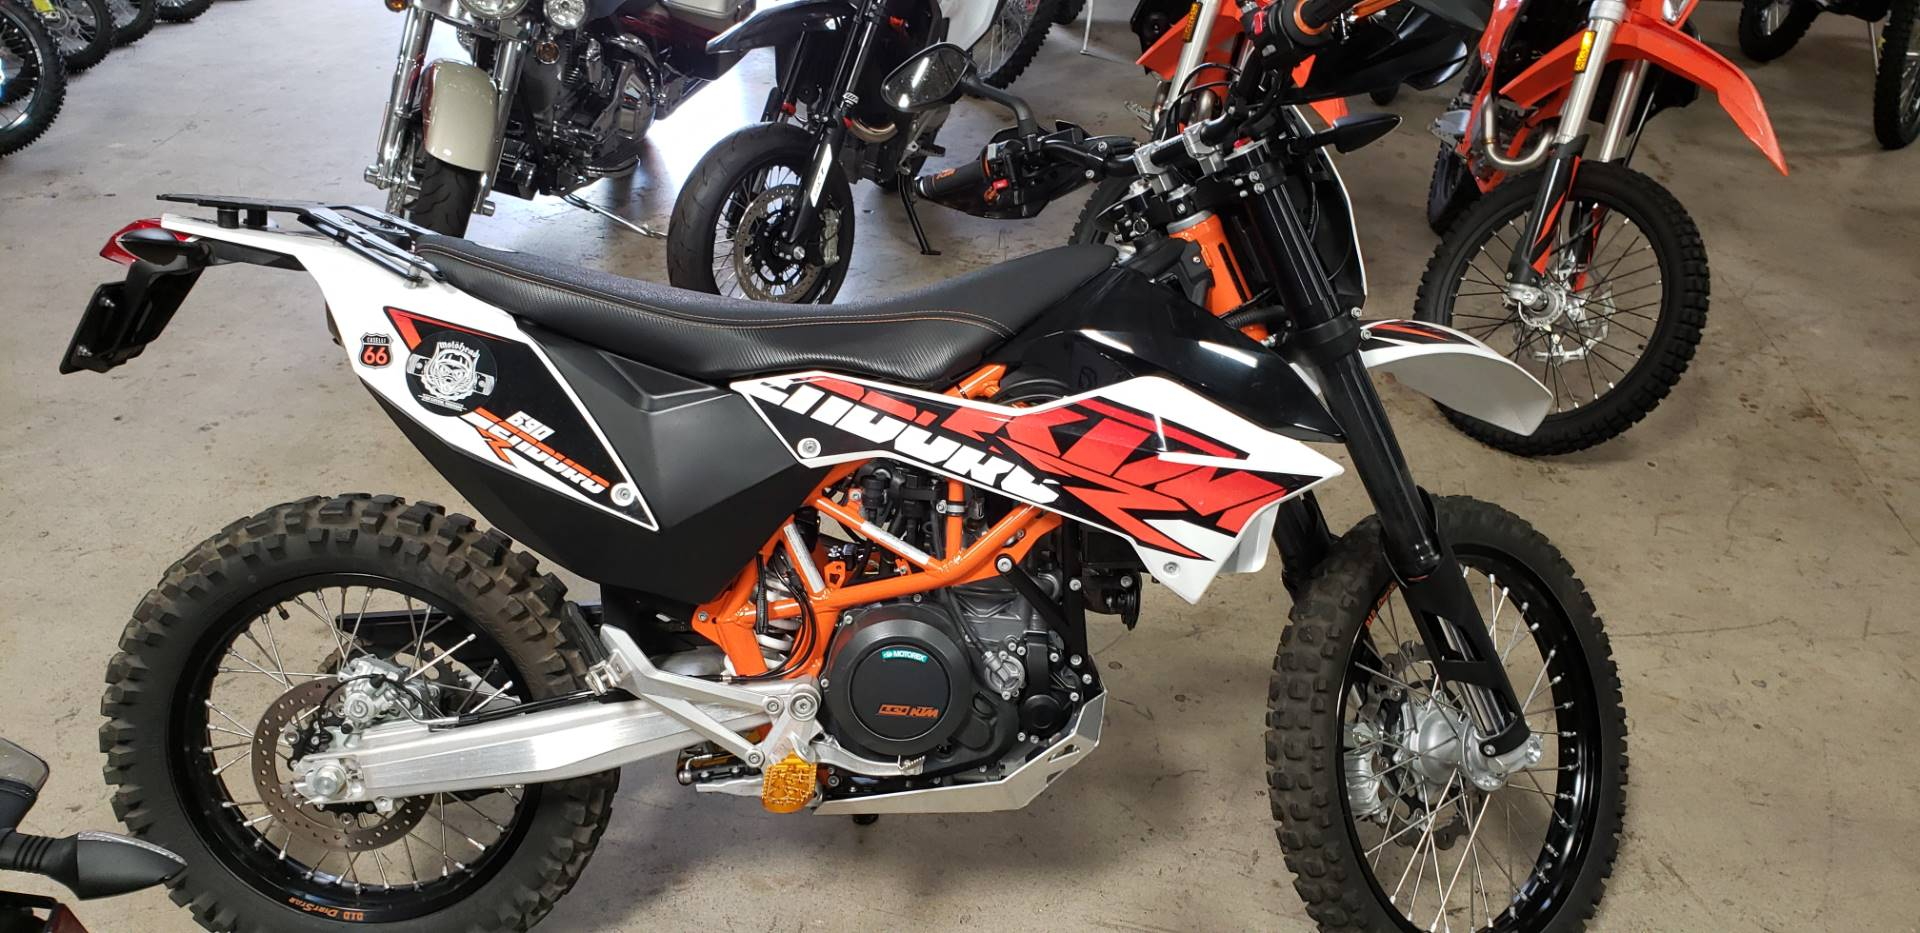 2015 KTM 690 ENDURO R in Orange, California - Photo 2